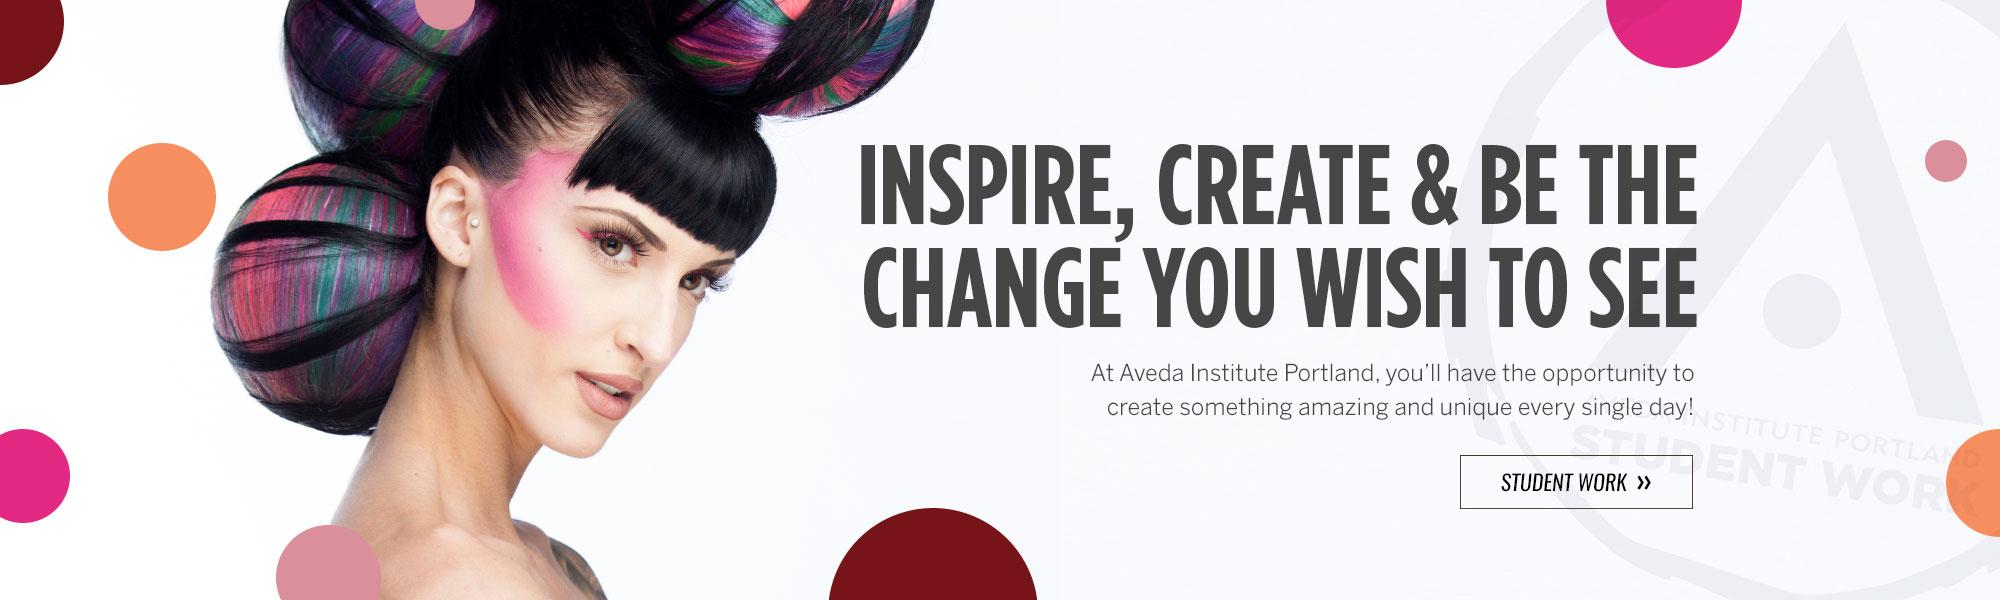 aveda coupons for haircut aveda coupons for haircut gallery haircuts 2018 fade 3820